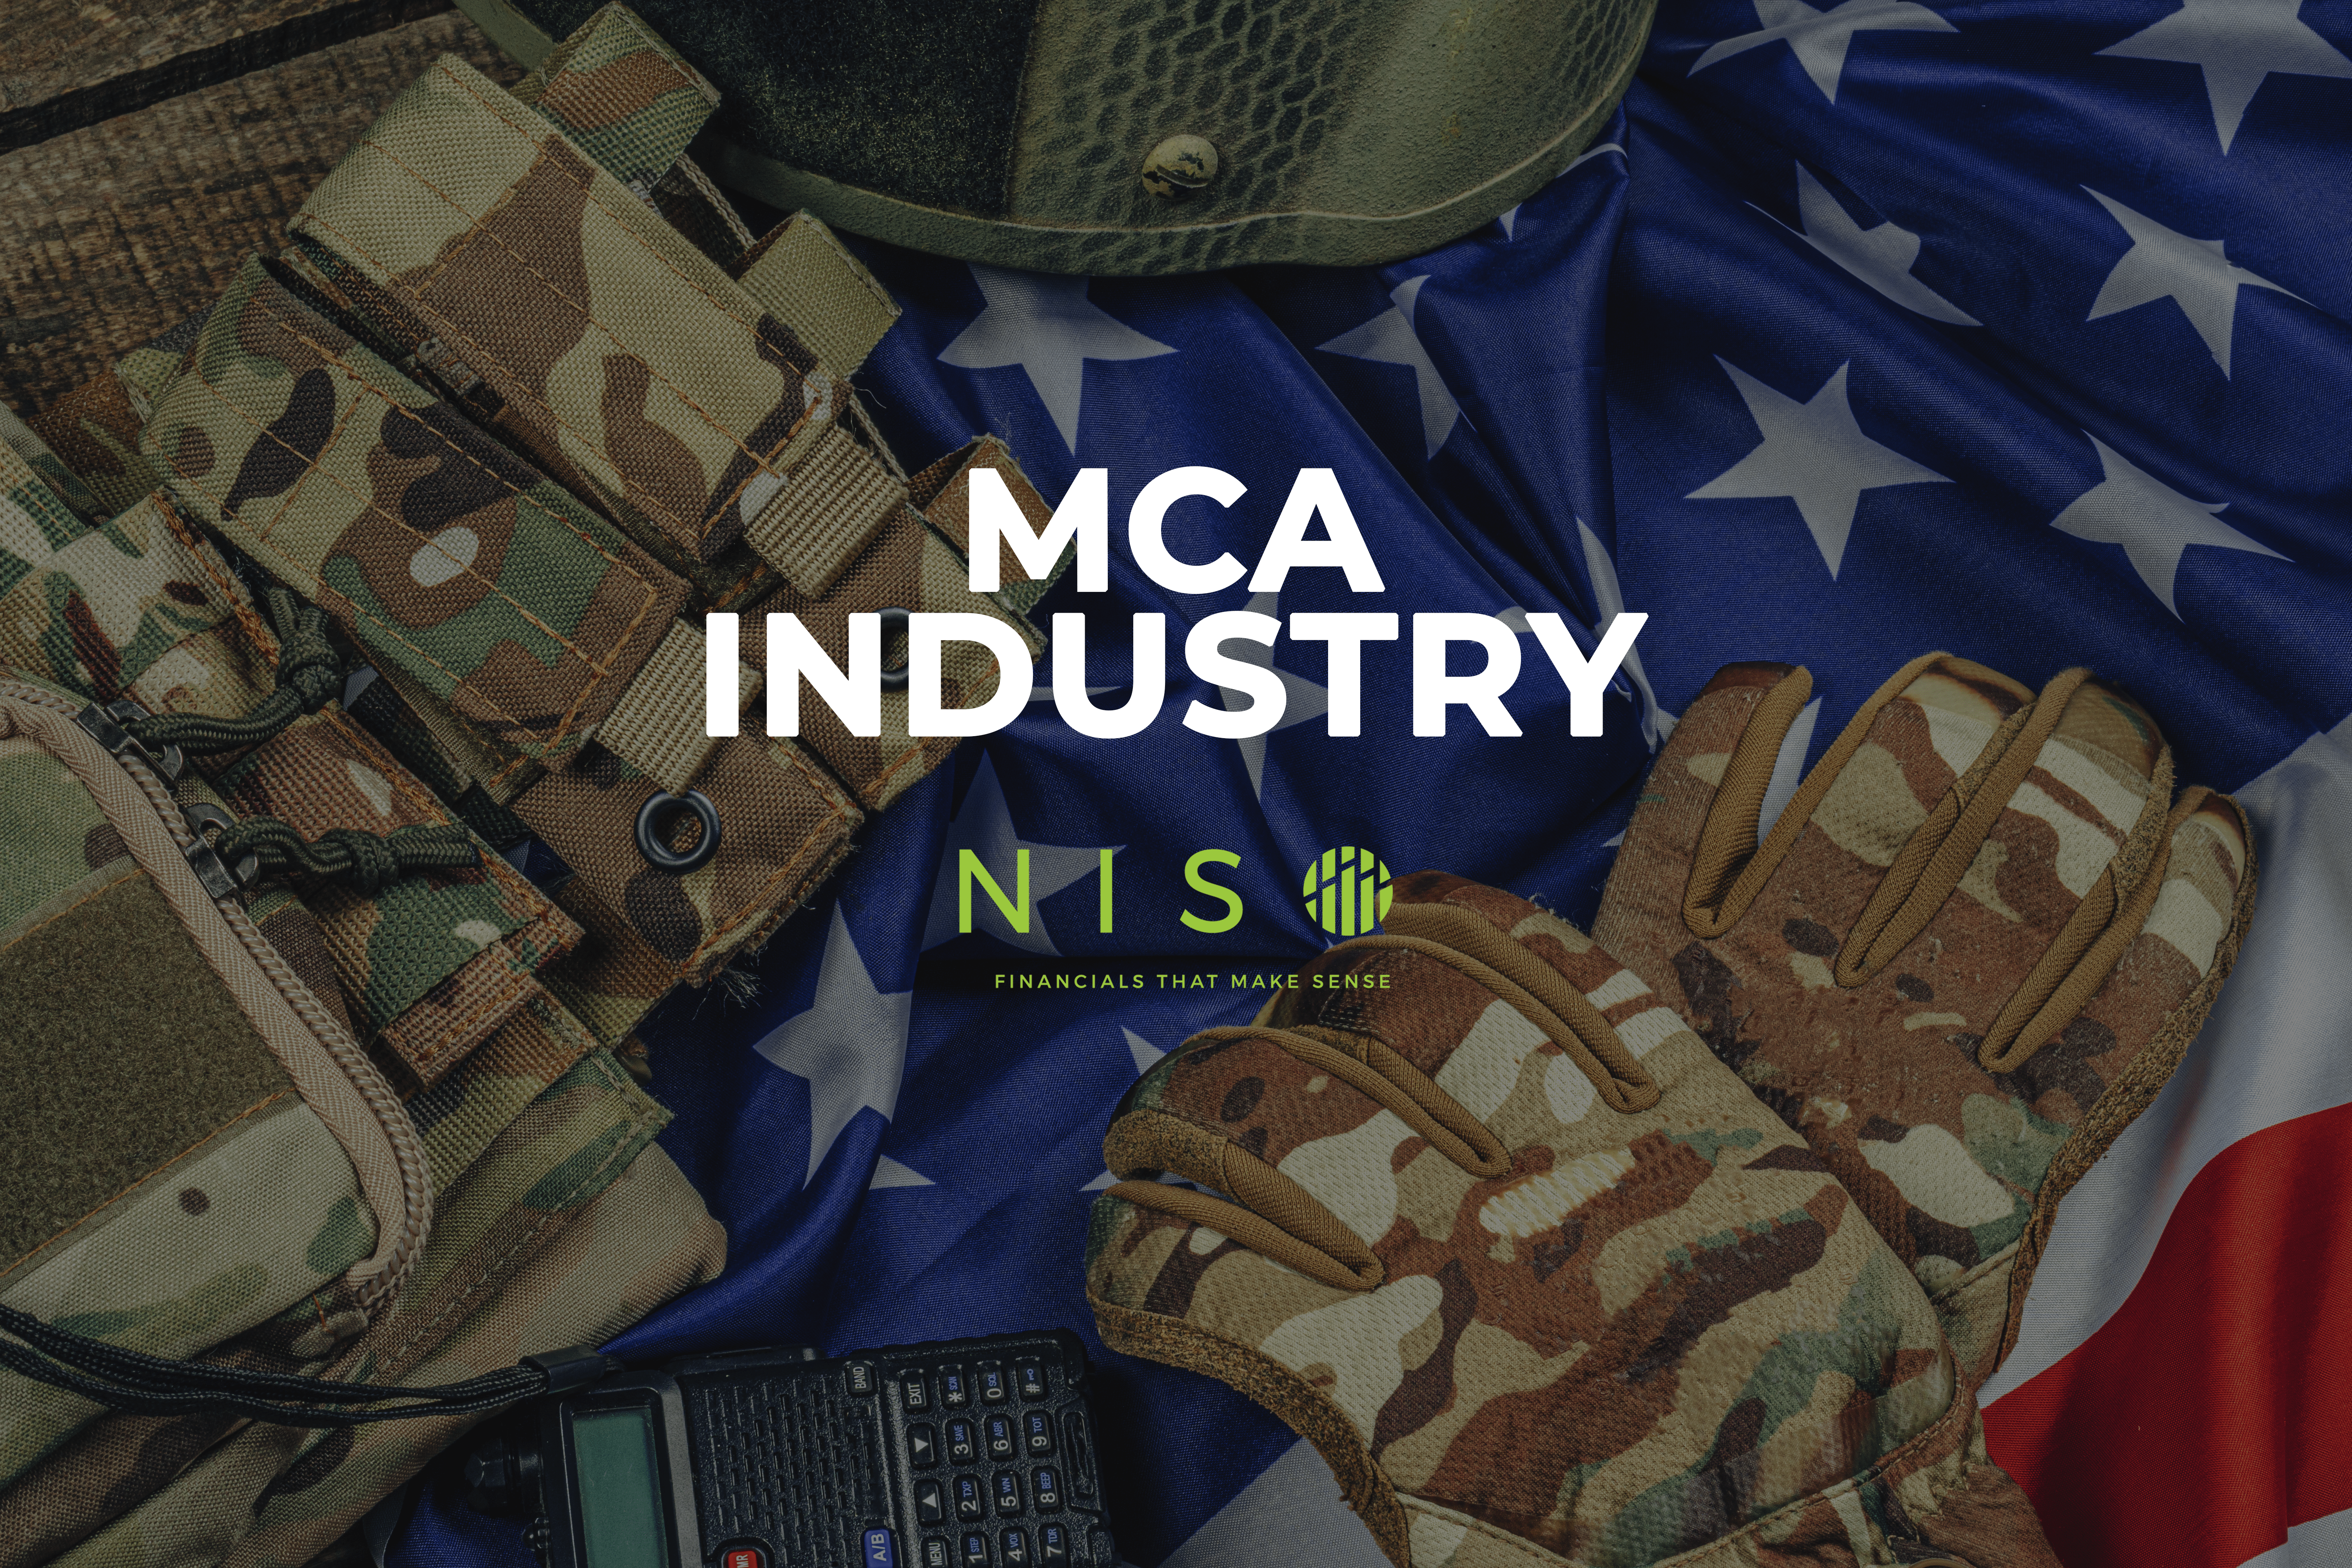 c3i military and mca industry